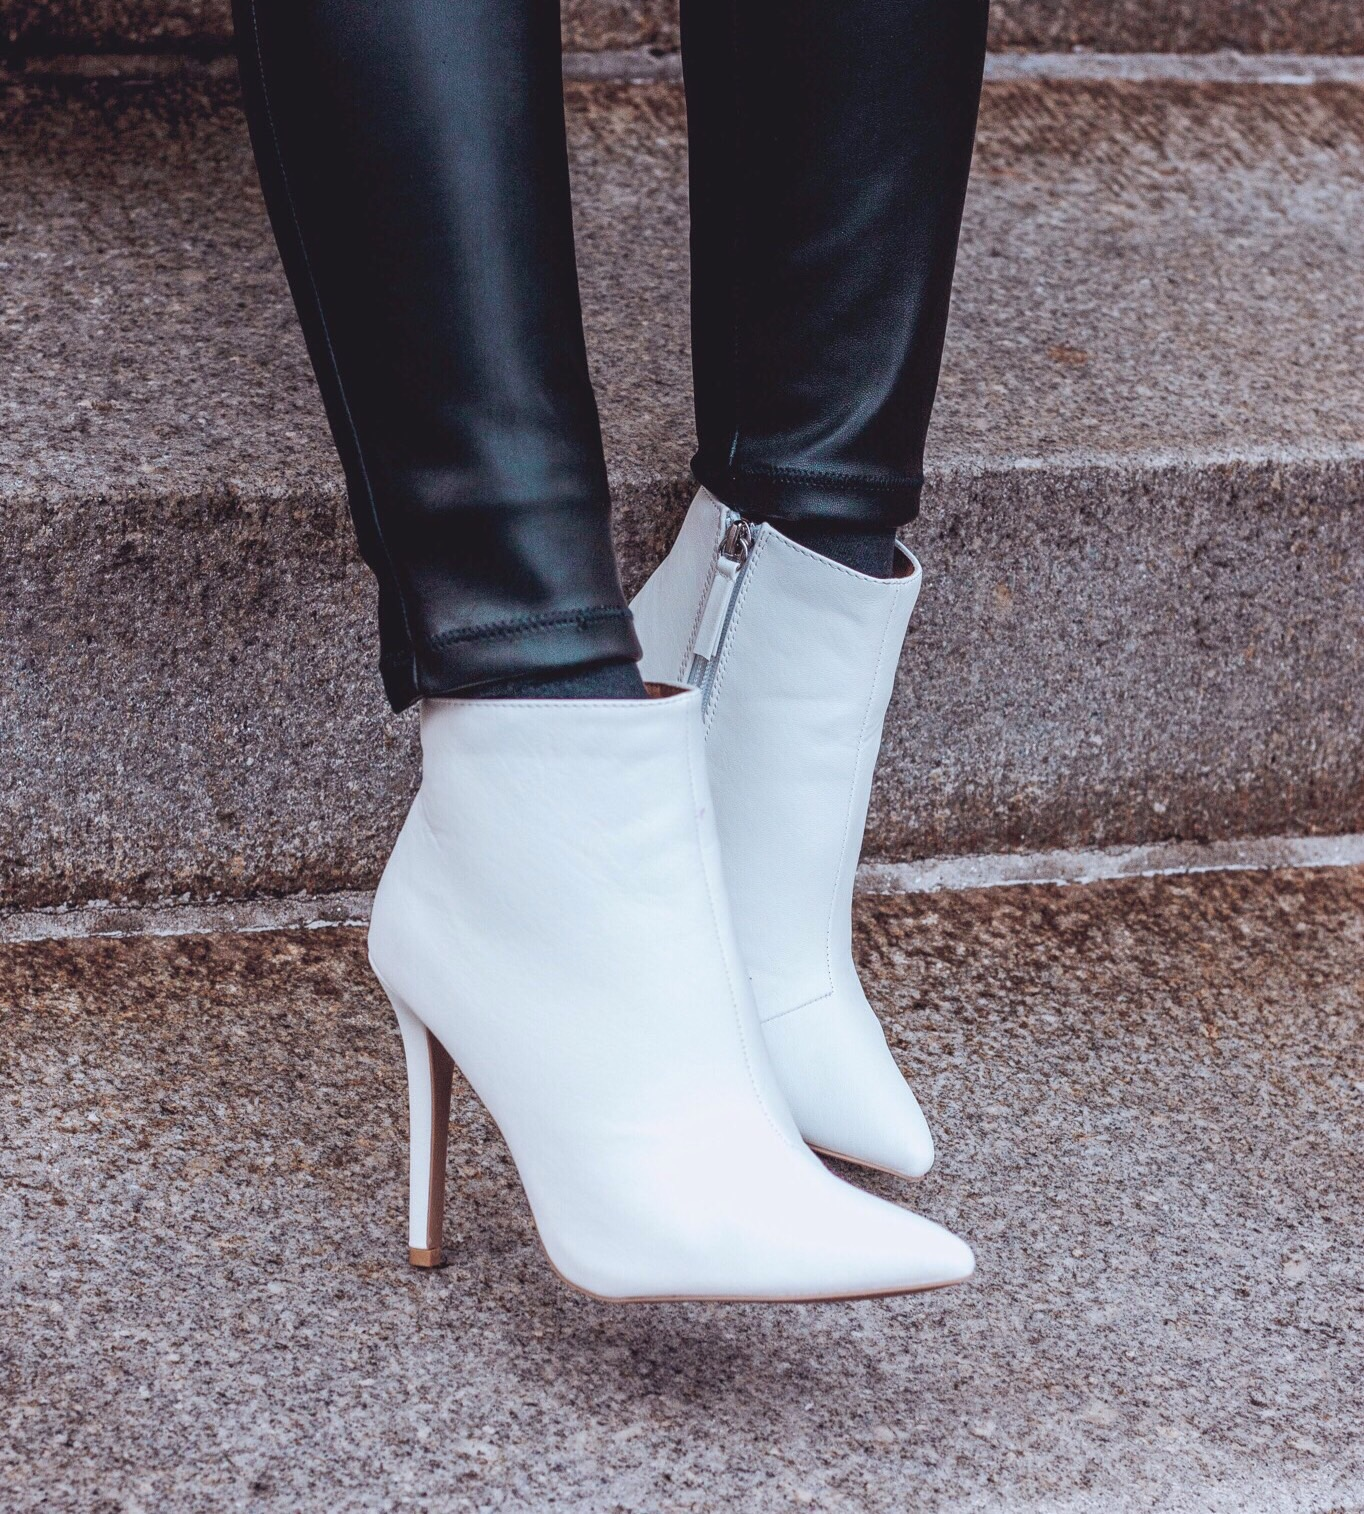 White ankle booties, white ankle boots, Free People Vegan leather legging